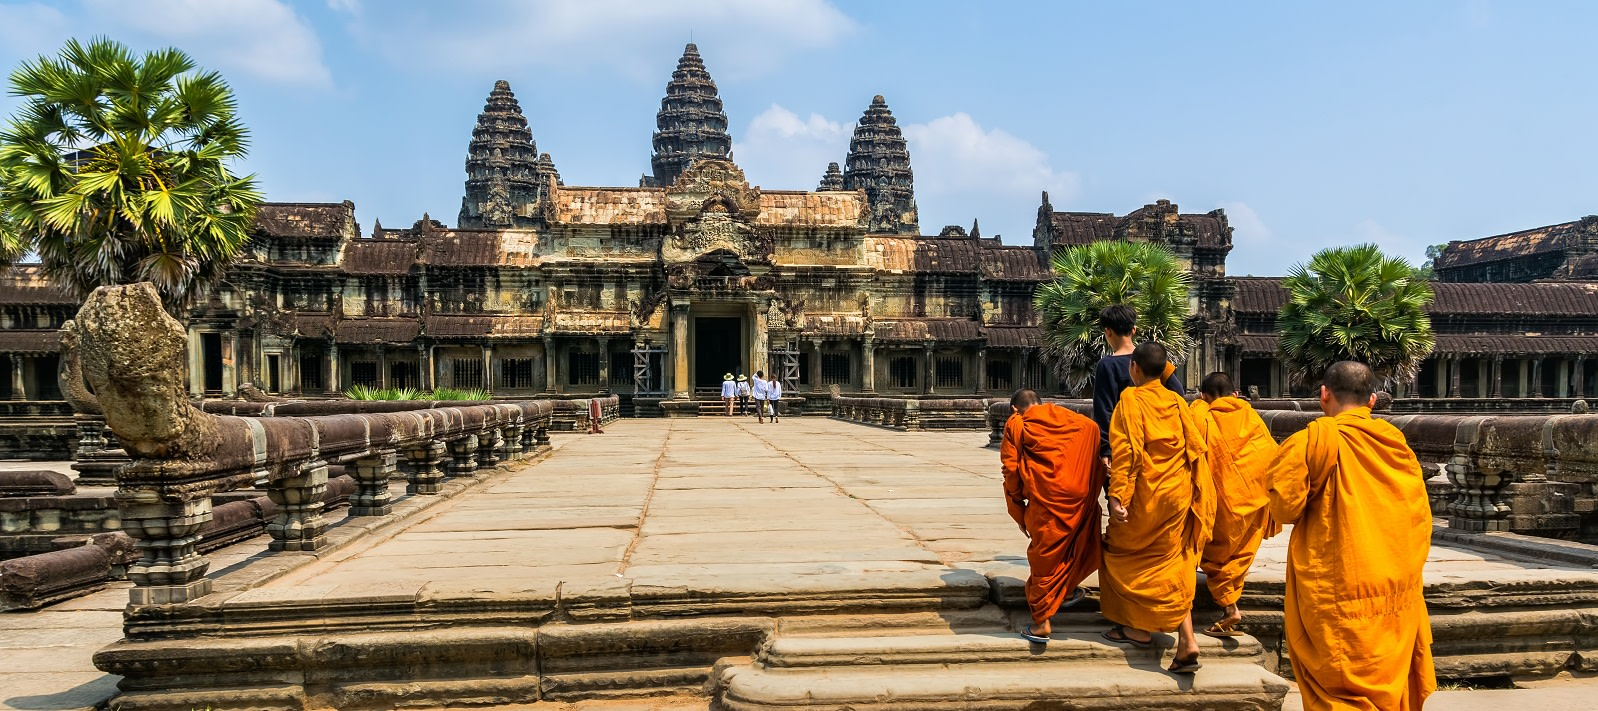 Amazing view of Angkor Wat is a temple complex in Cambodia and the largest religious monument in the world